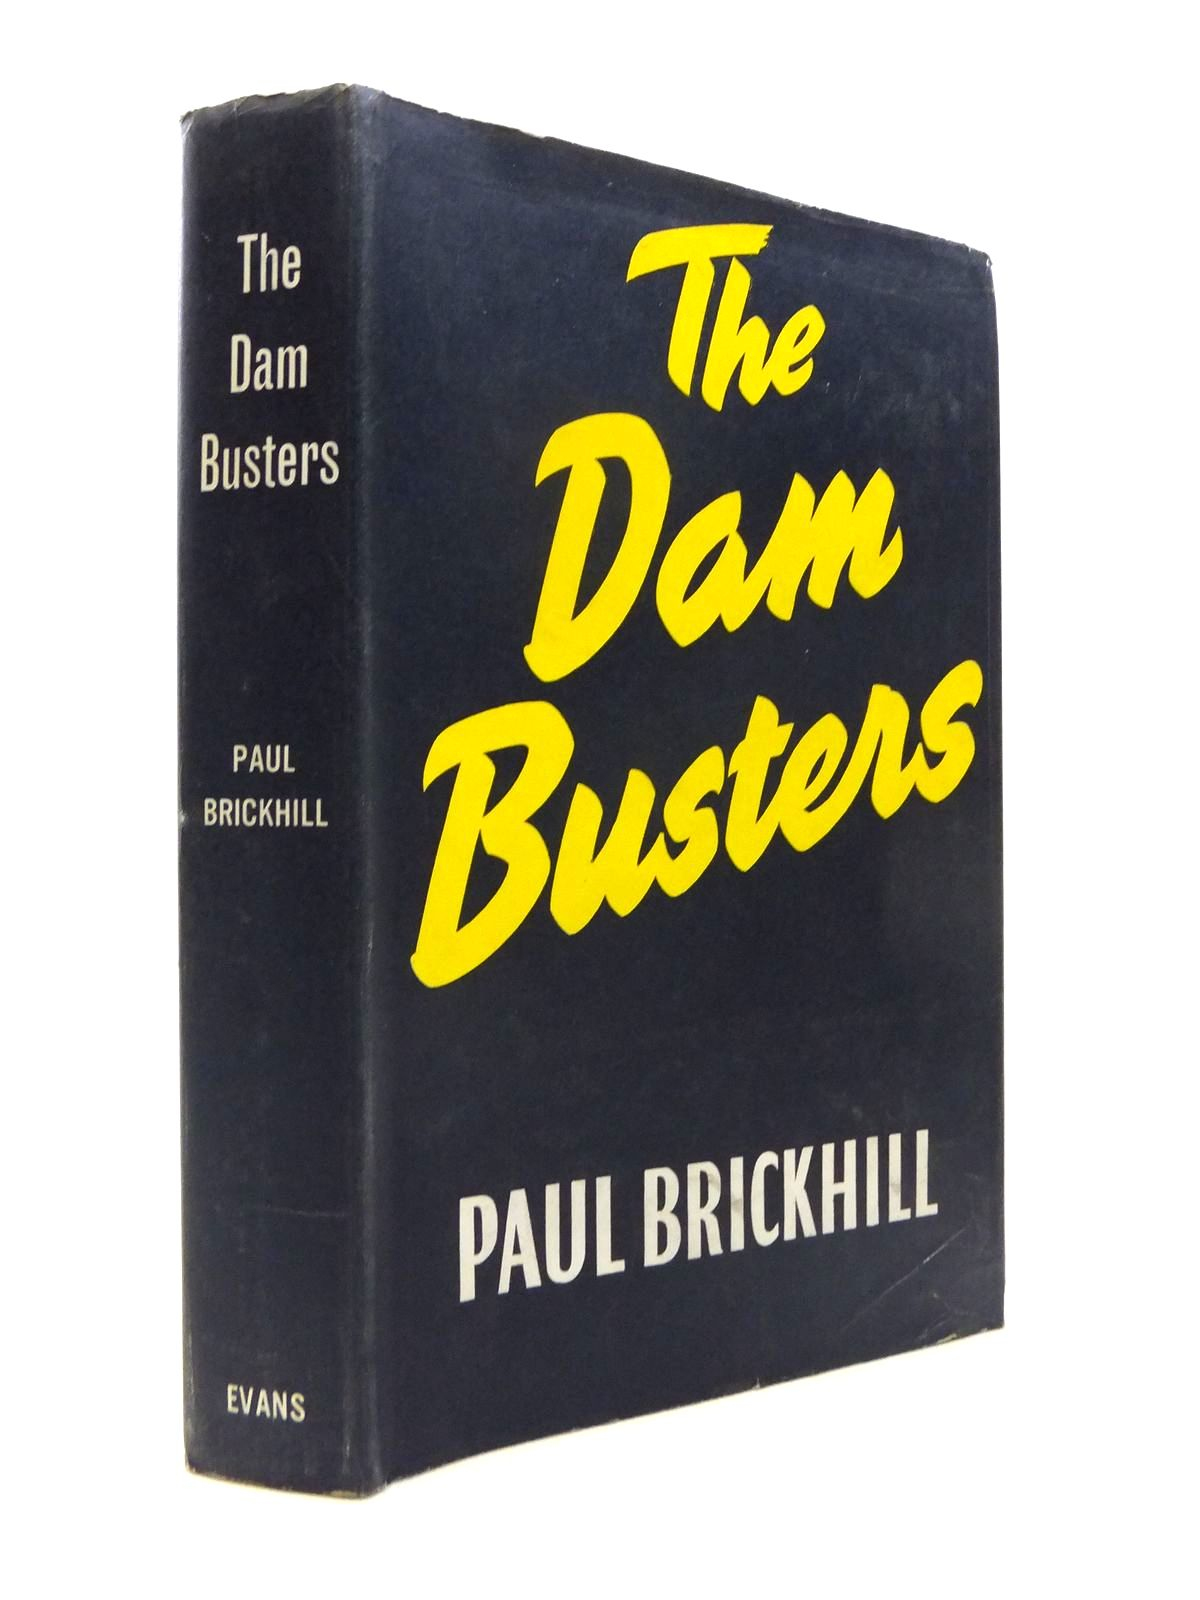 Photo of THE DAM BUSTERS written by Brickhill, Paul published by Evans Brothers Limited (STOCK CODE: 1812128)  for sale by Stella & Rose's Books